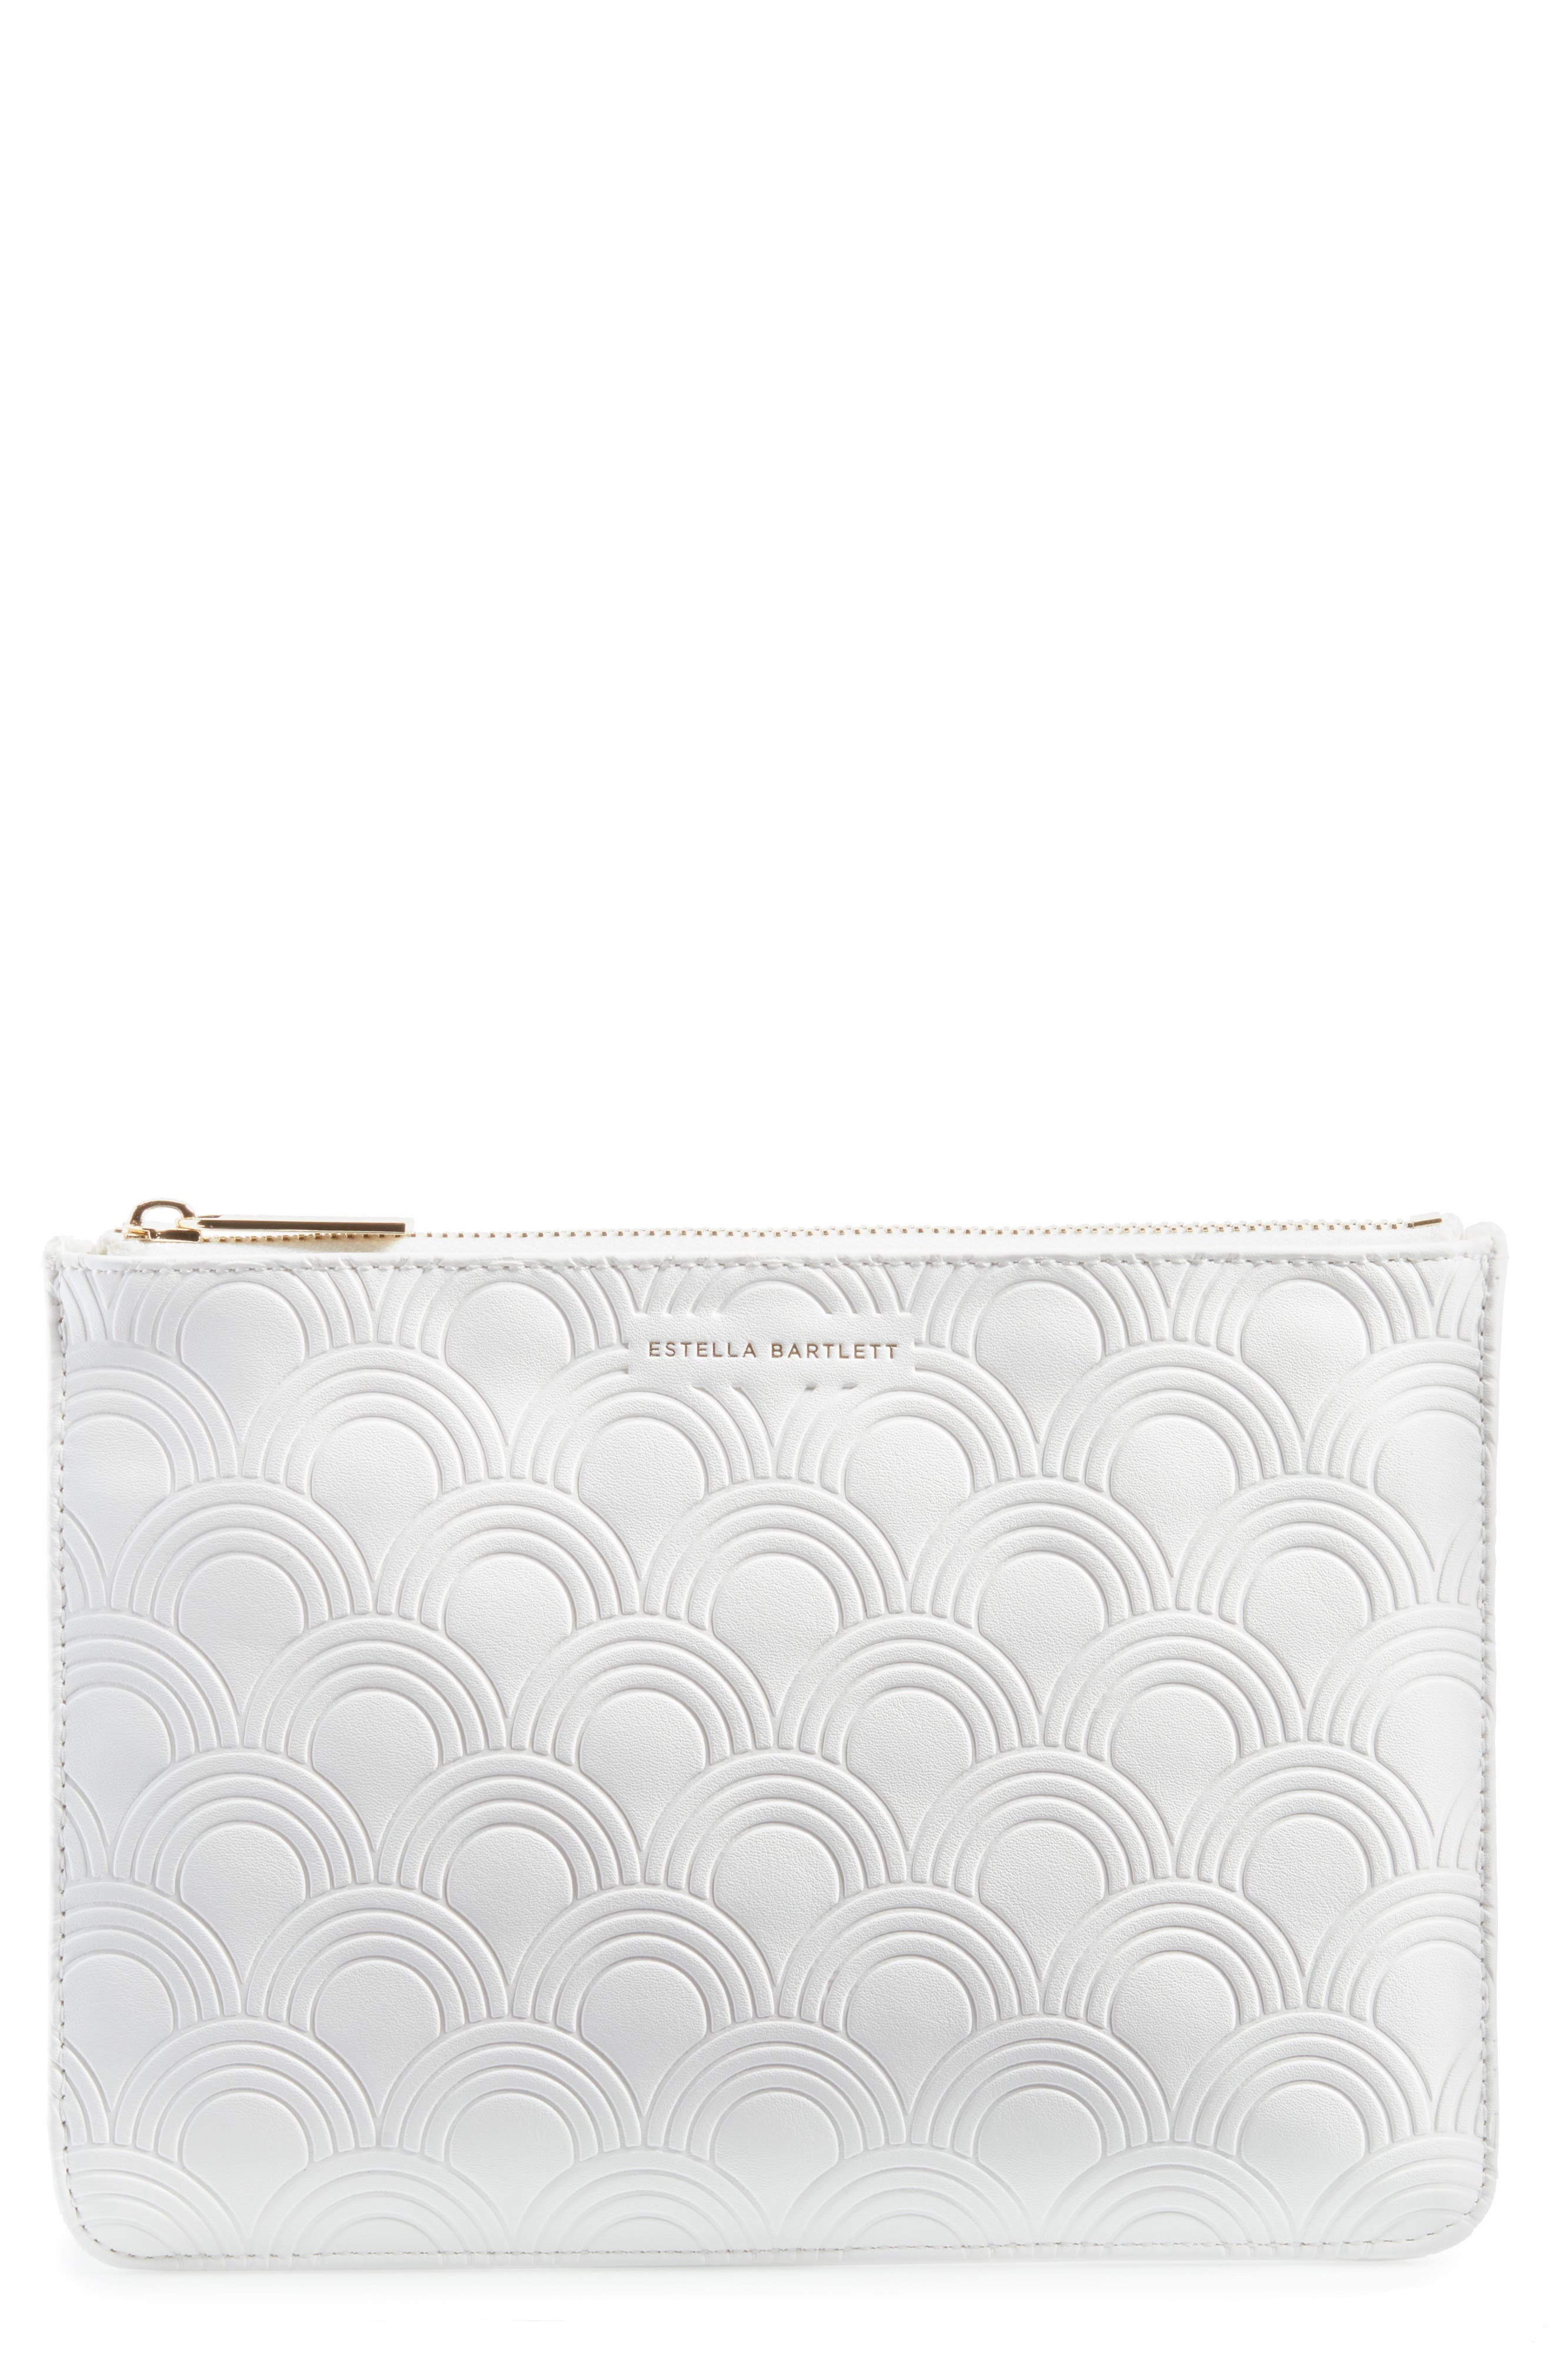 Medium Embossed Faux Leather Pouch,                         Main,                         color, 900